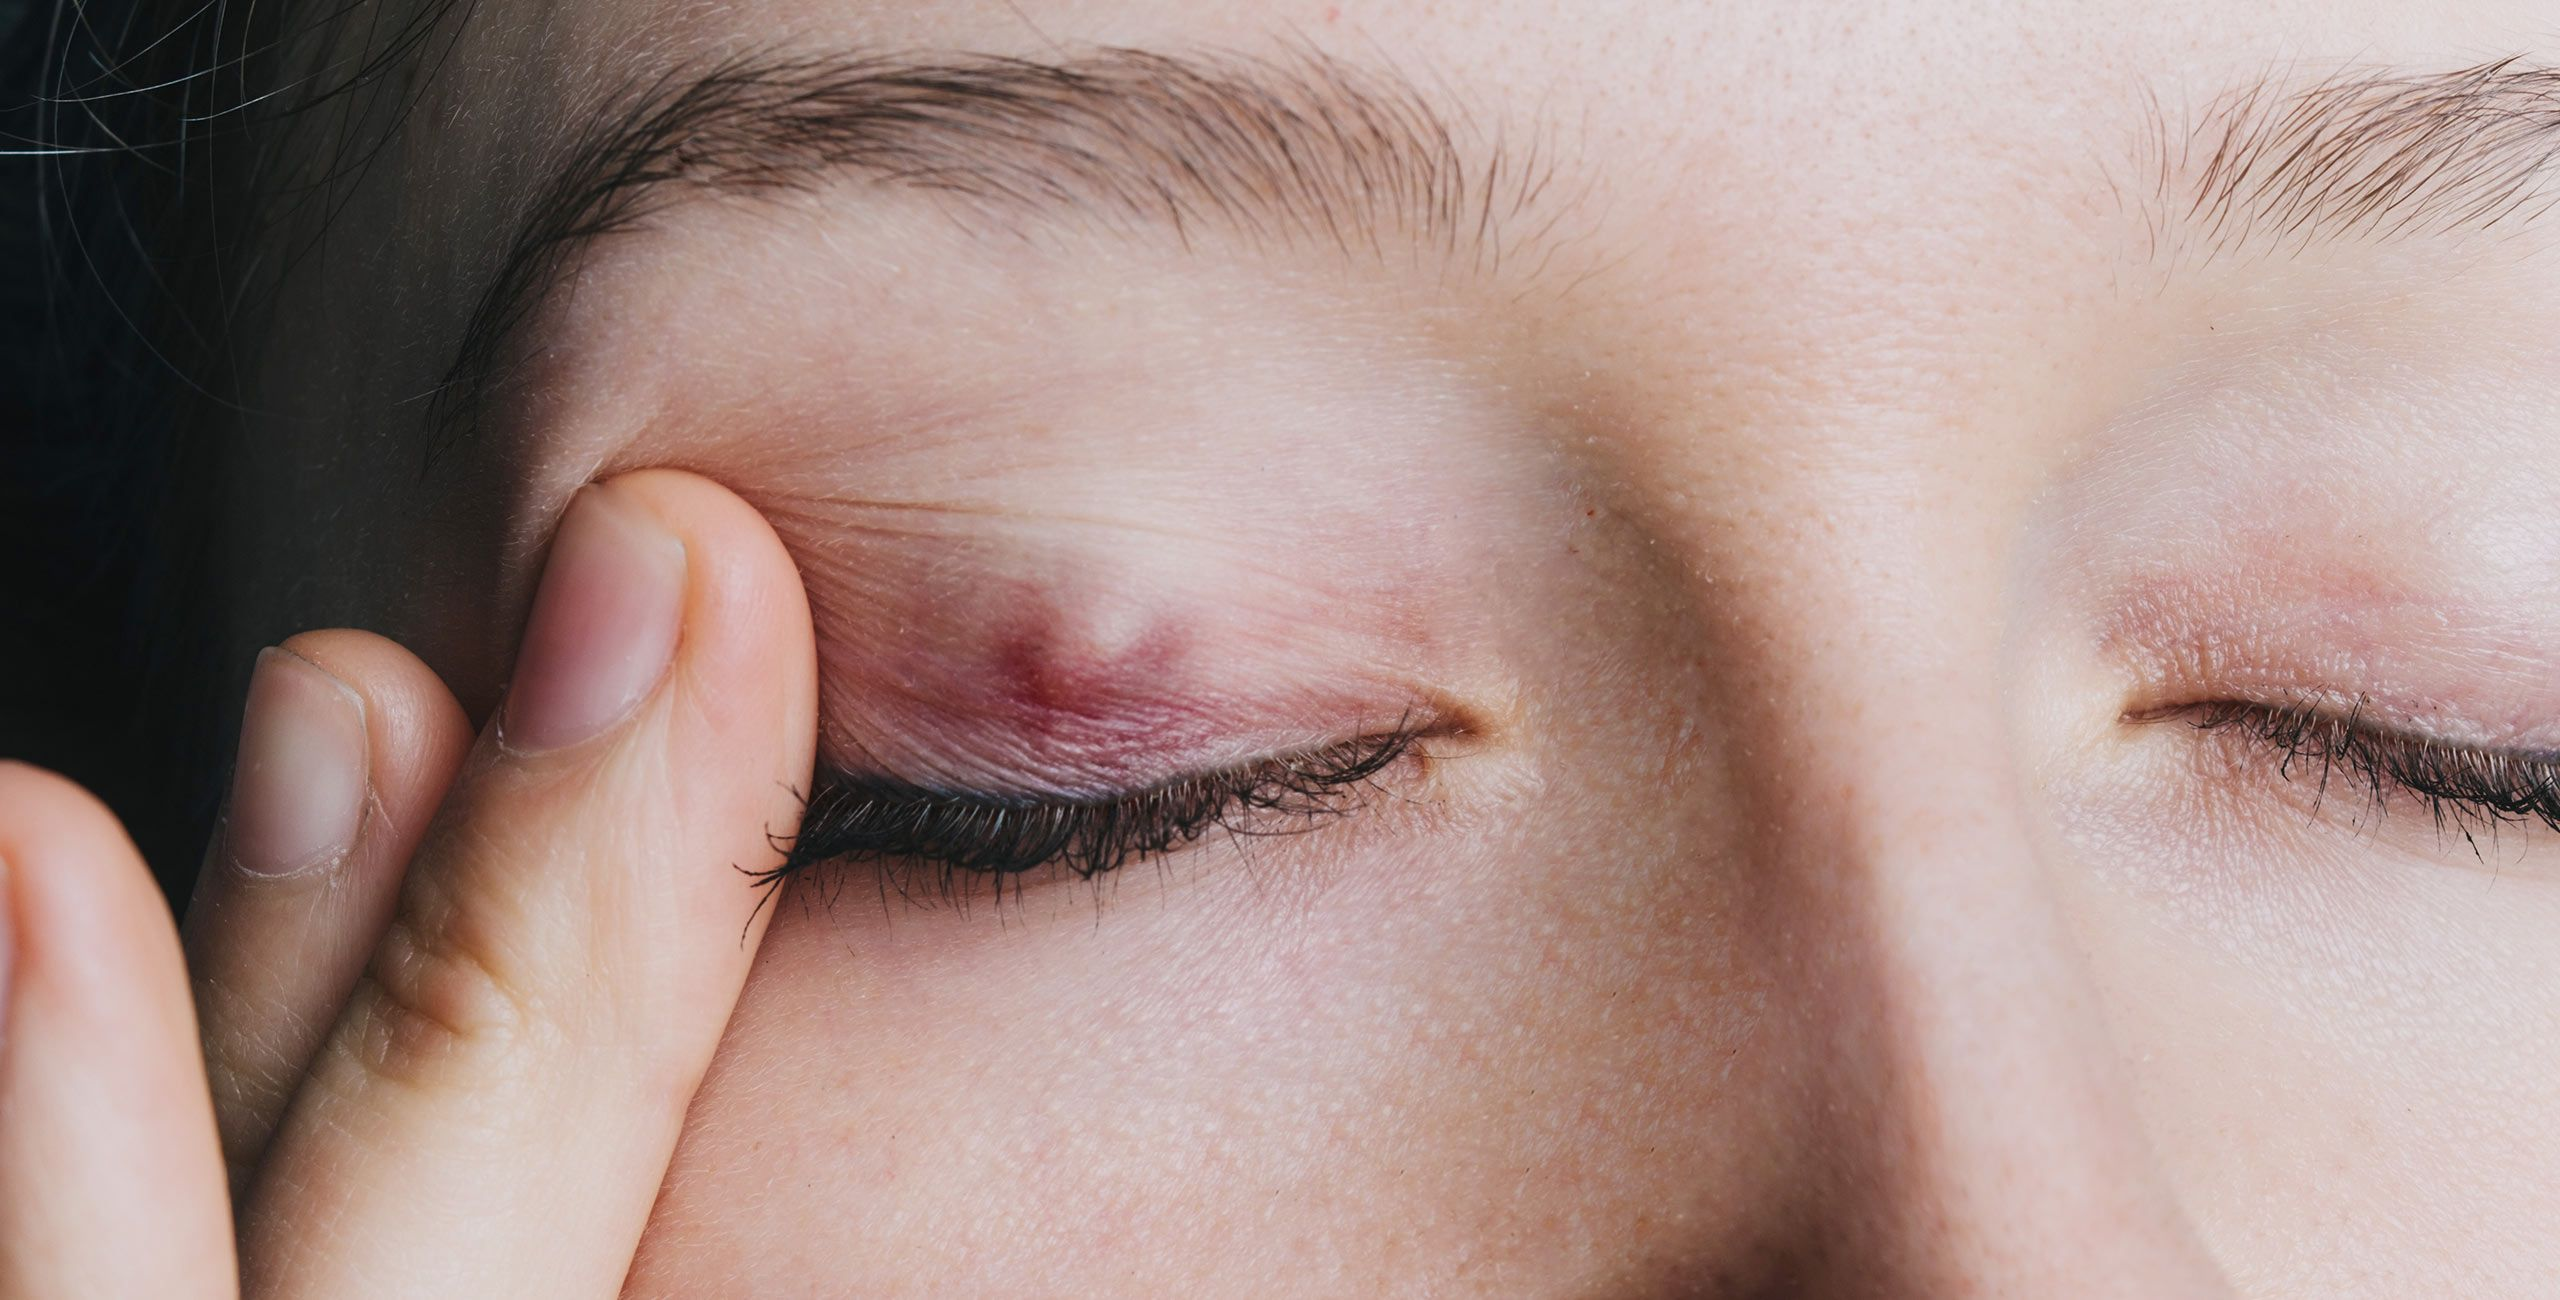 La pathologie de chalazion à Paris 5 au Centre ophtalmologique COSS